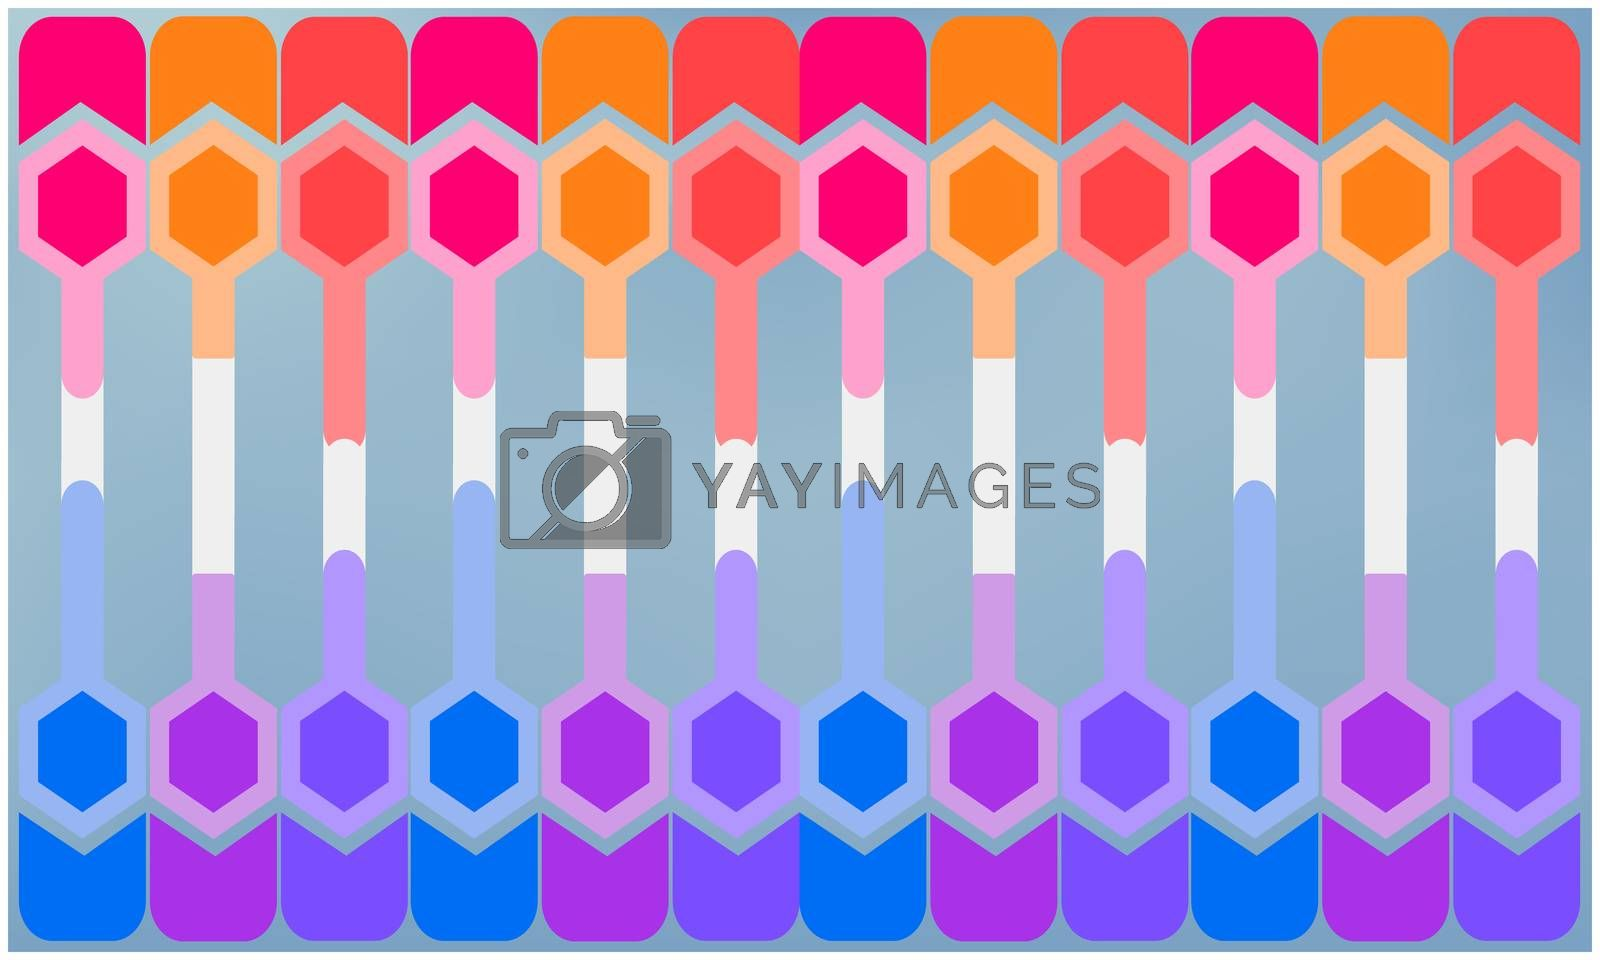 digital textile design of hexagon art on abstract backgrounds